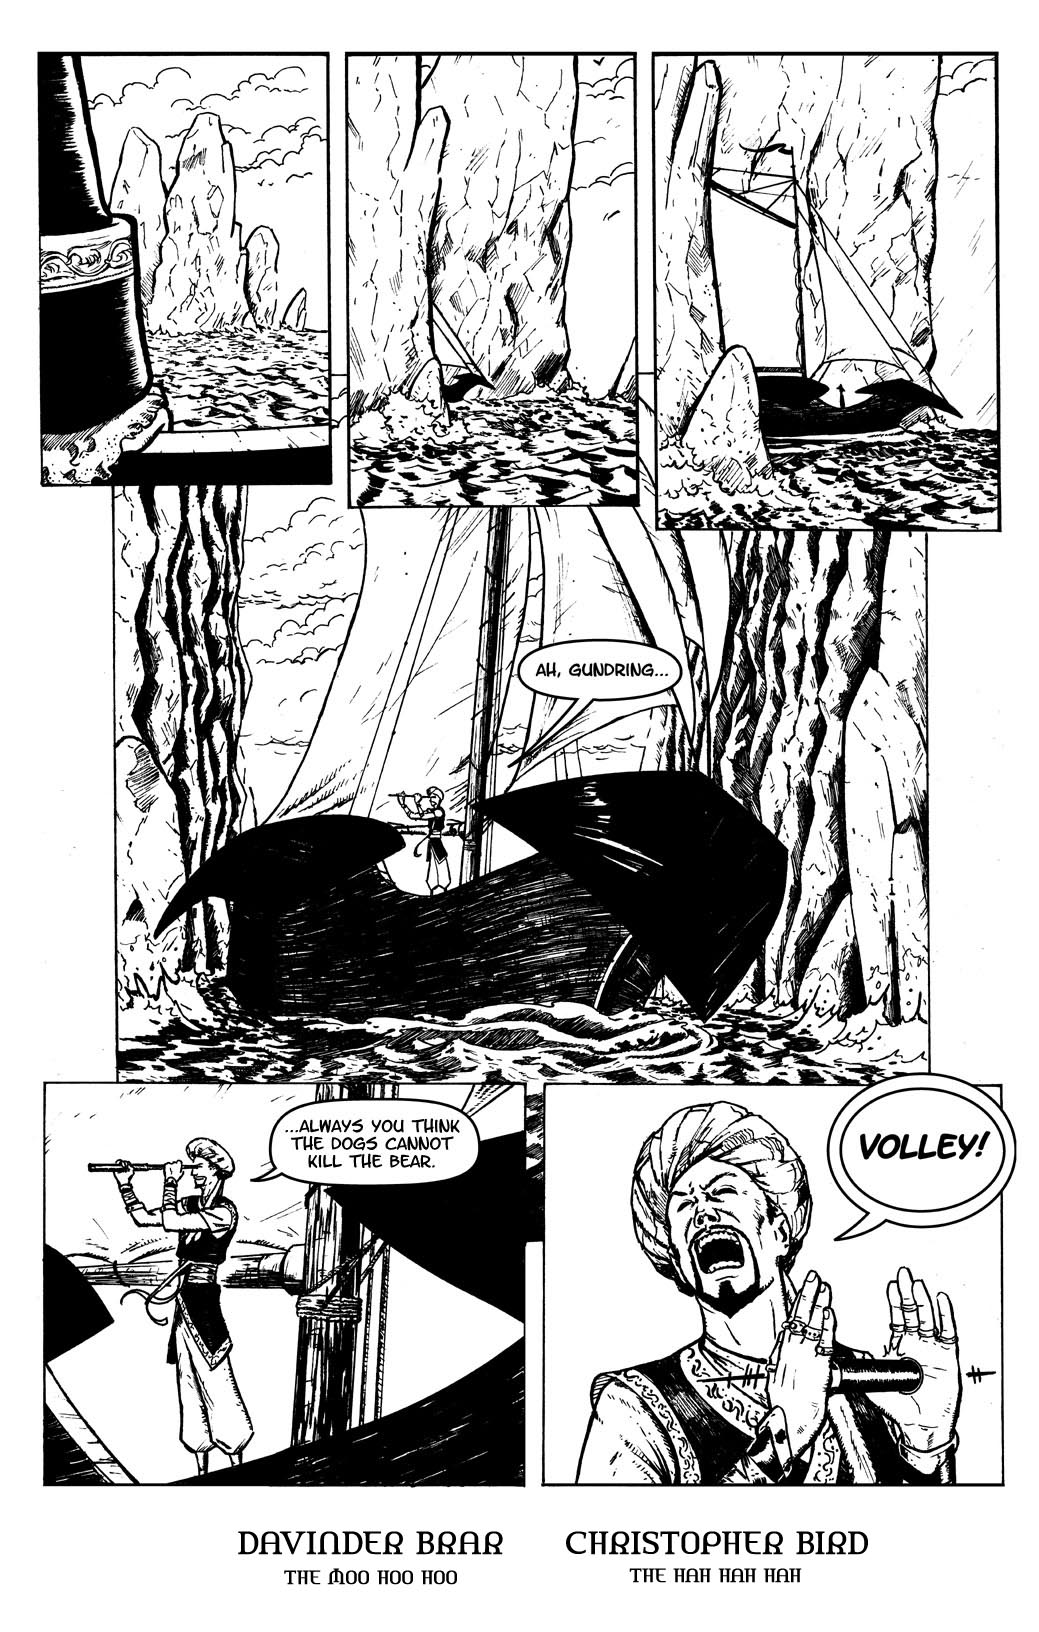 Book 1, page 3